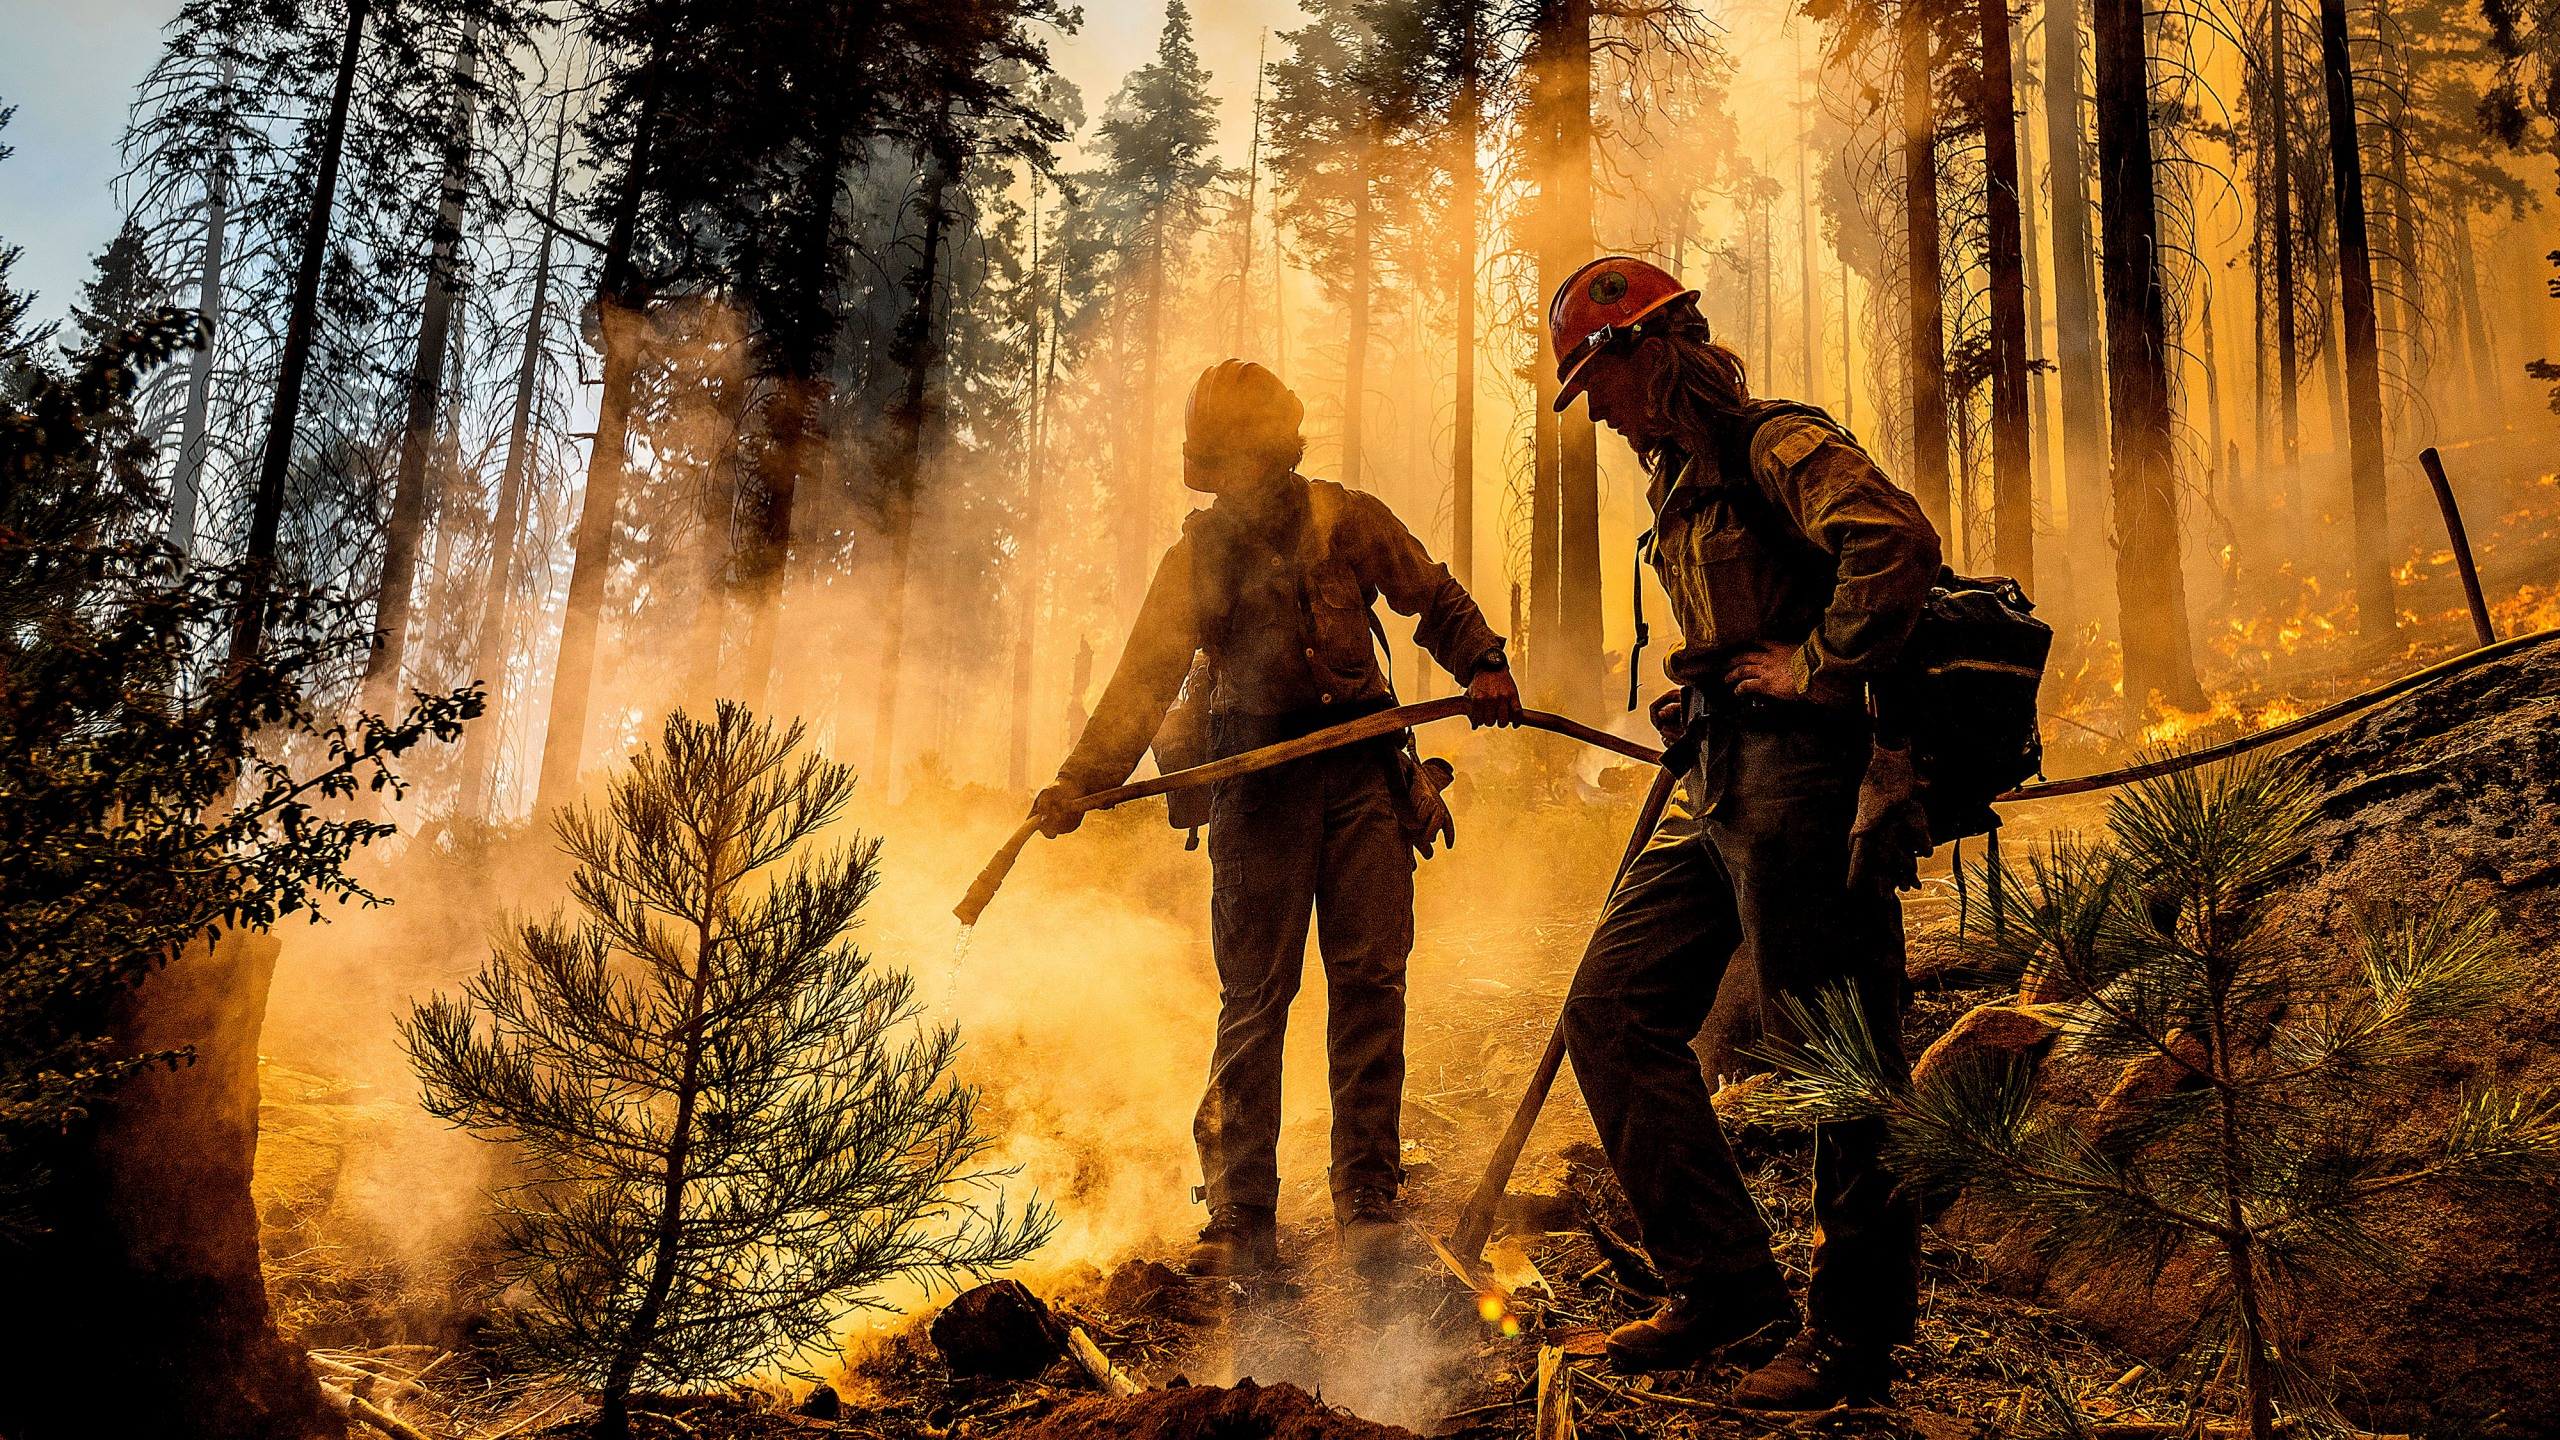 Firefighter Austin Cia sprays water as the Windy Fire burns in the Trail of 100 Giants grove in Sequoia National Forest on Sept. 19, 2021. (Noah Berger / Associated Press)